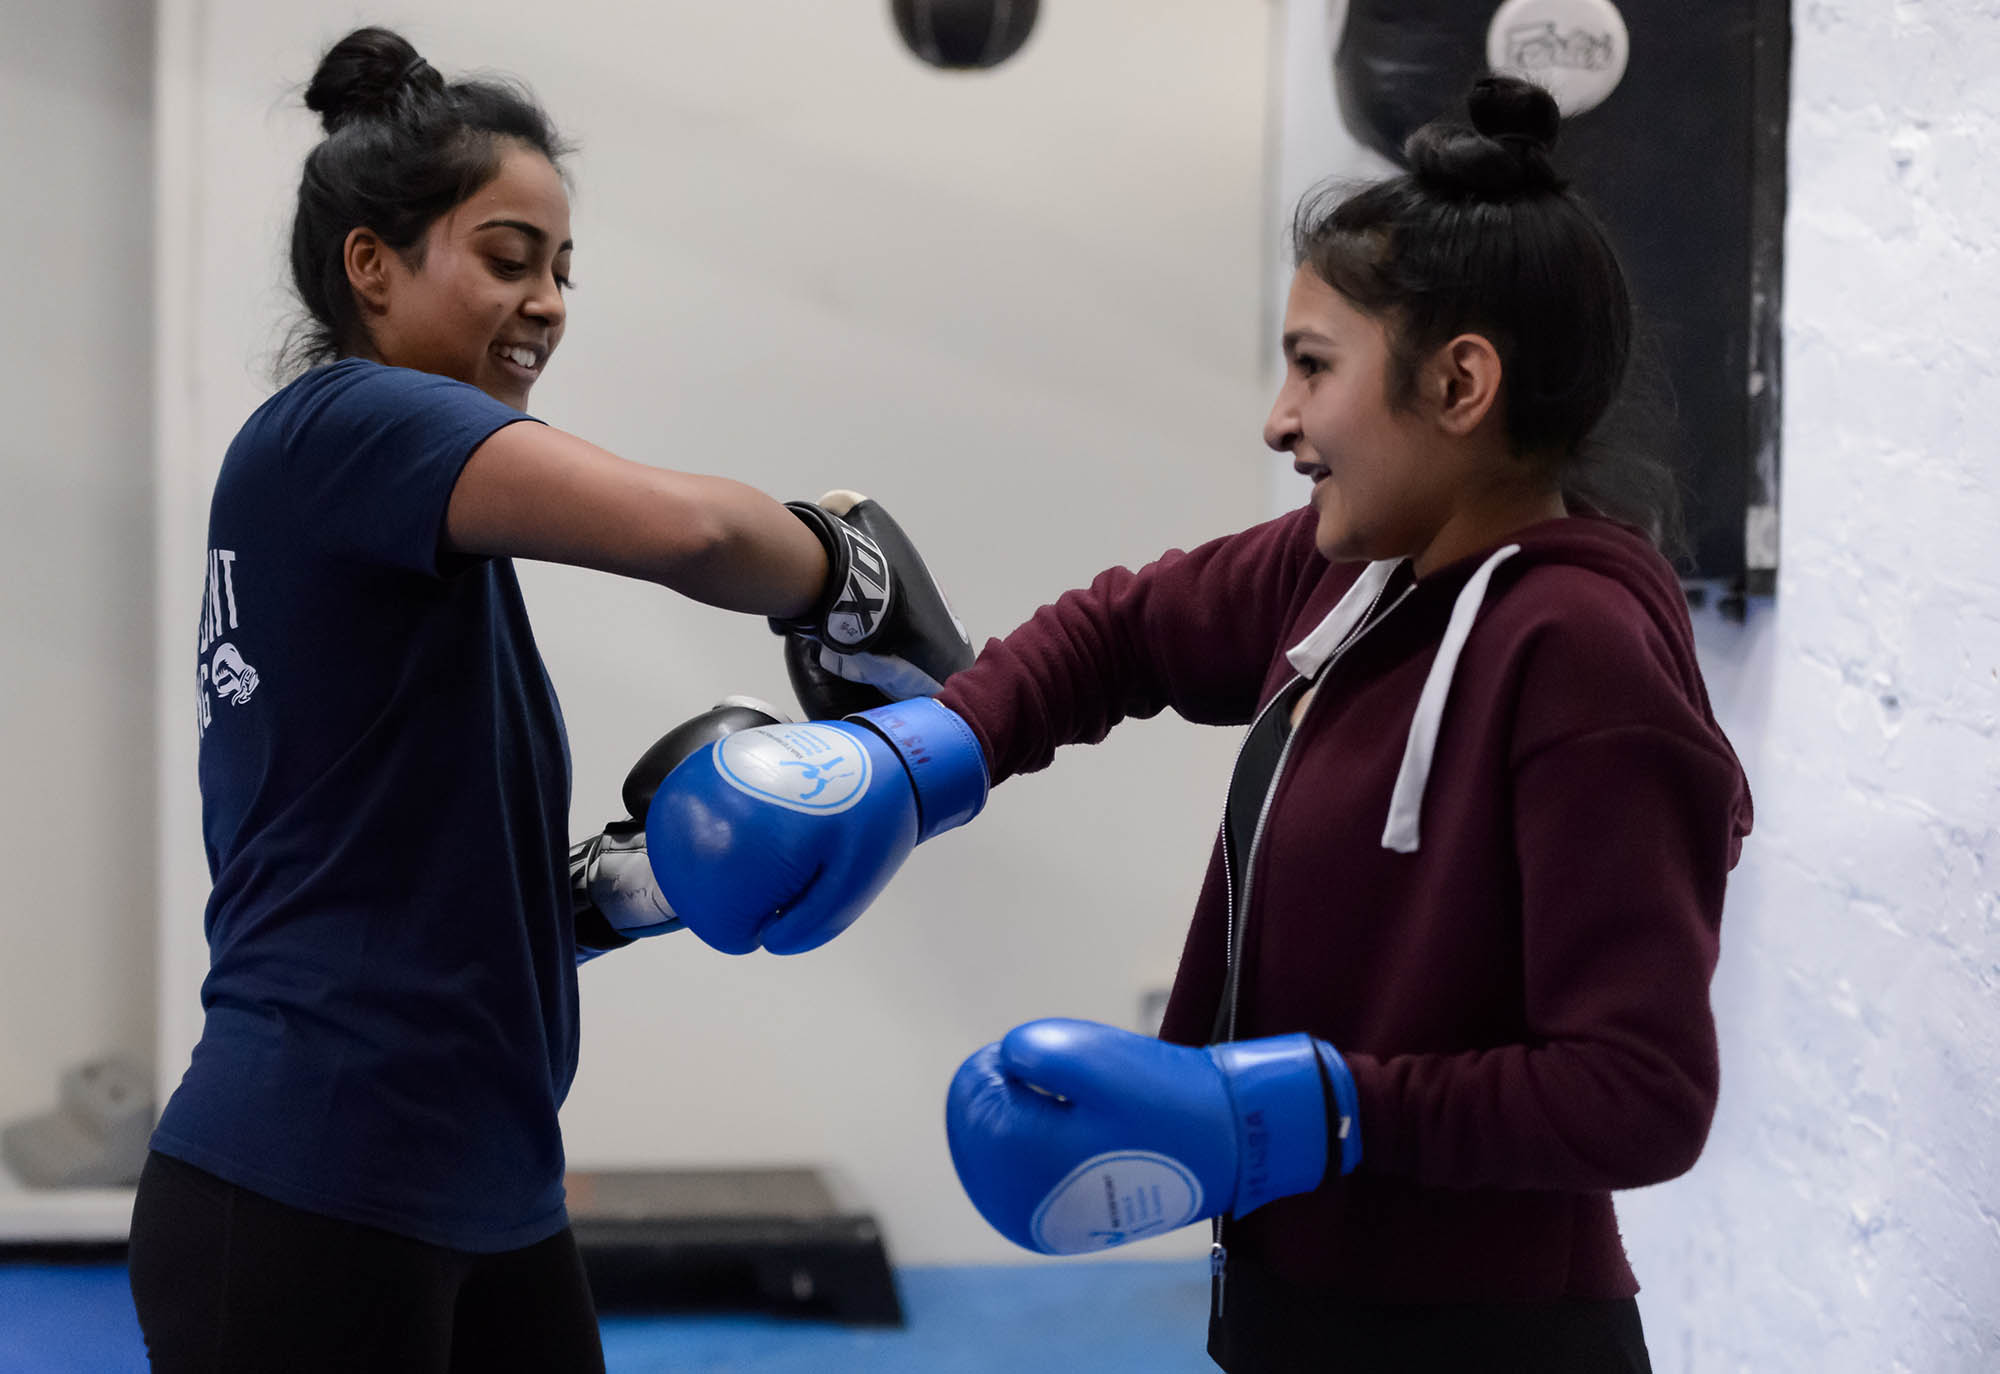 Two girls lacing up boxing gloves